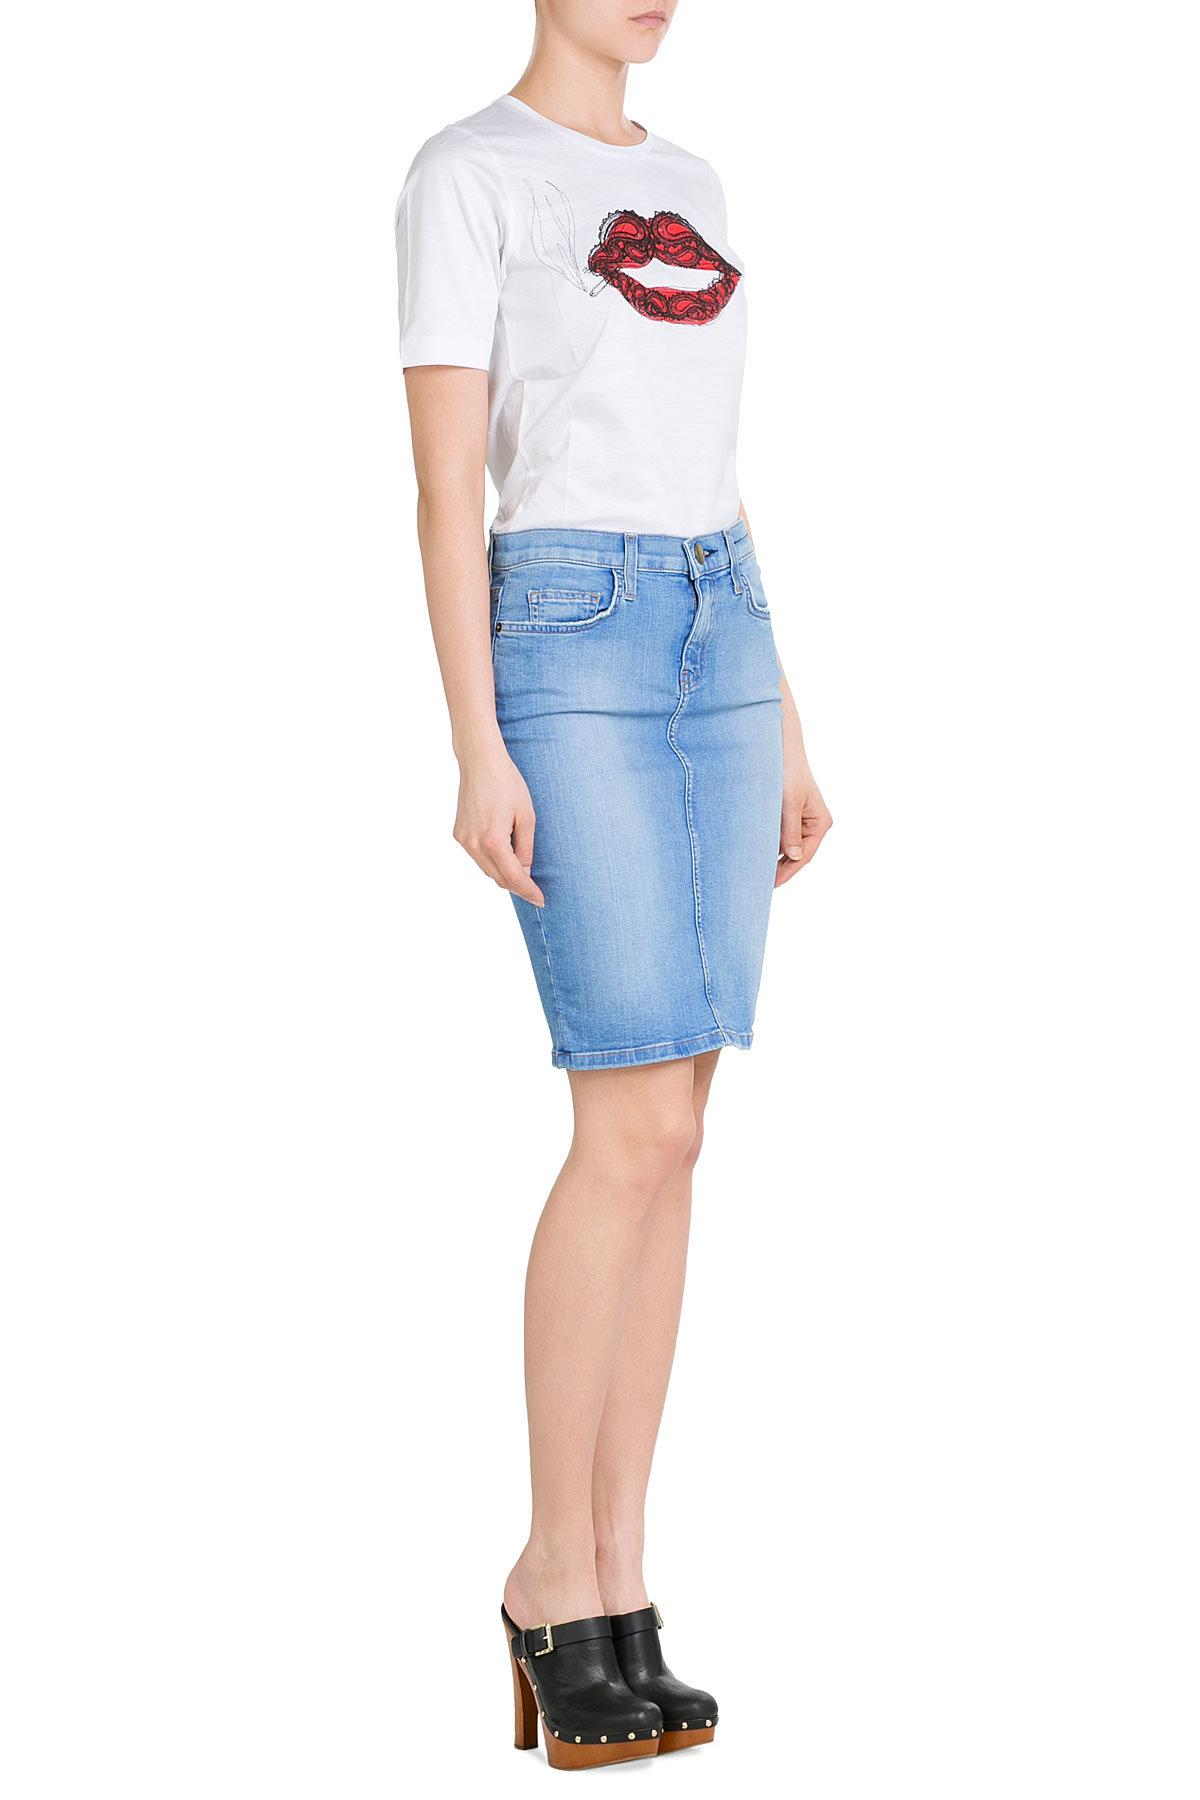 Find great deals on eBay for denim pencil skirt. Shop with confidence.